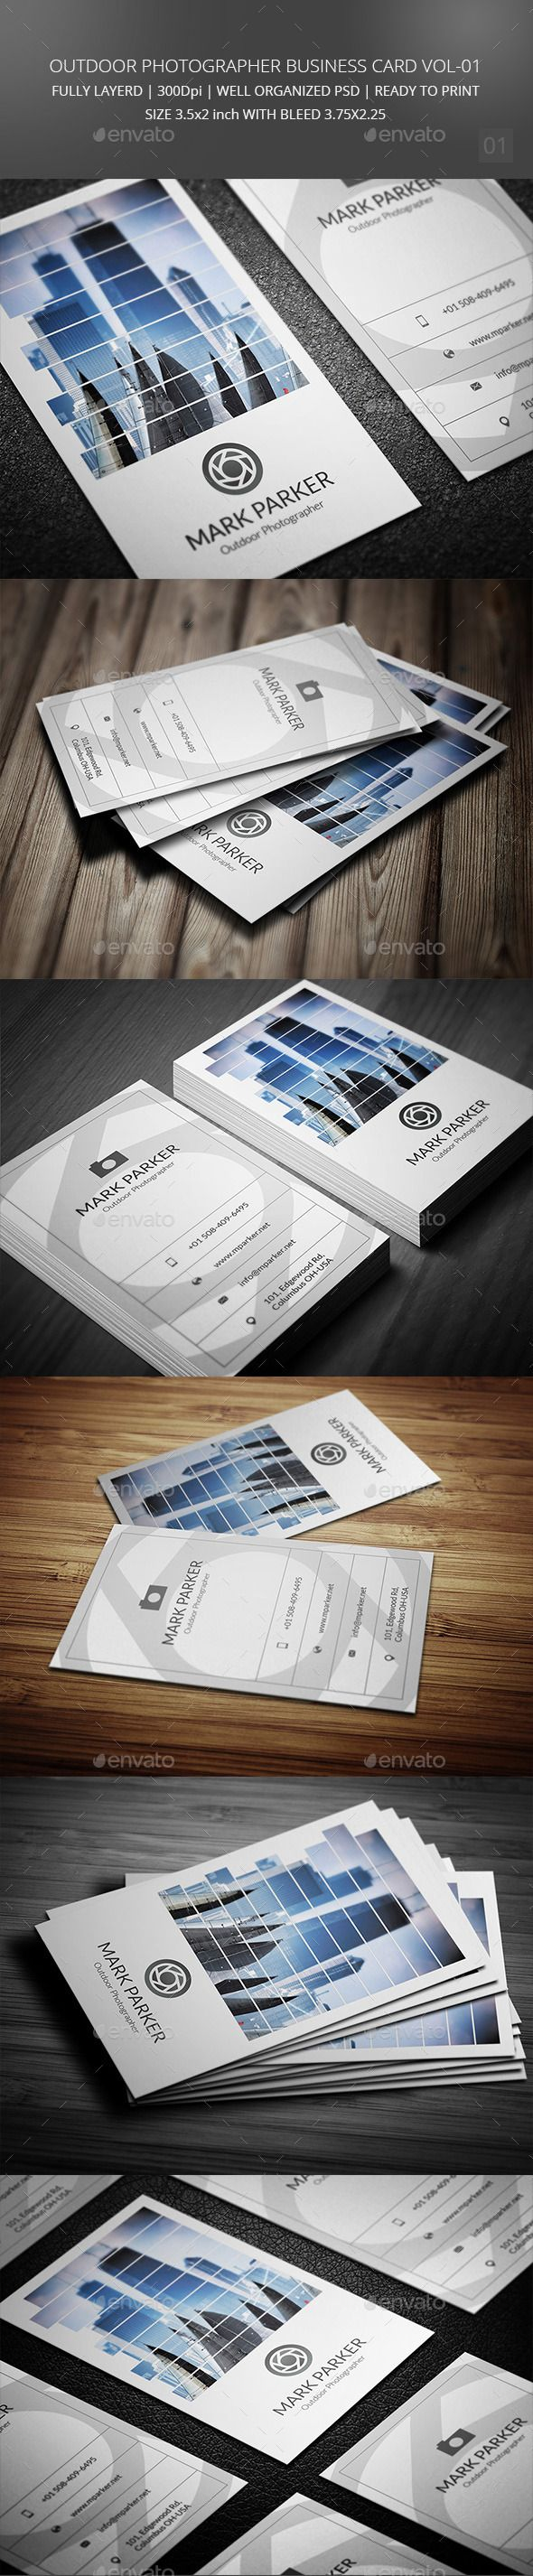 Best 25 photographer business cards ideas on pinterest outdoor photographer business card vol 01 magicingreecefo Image collections